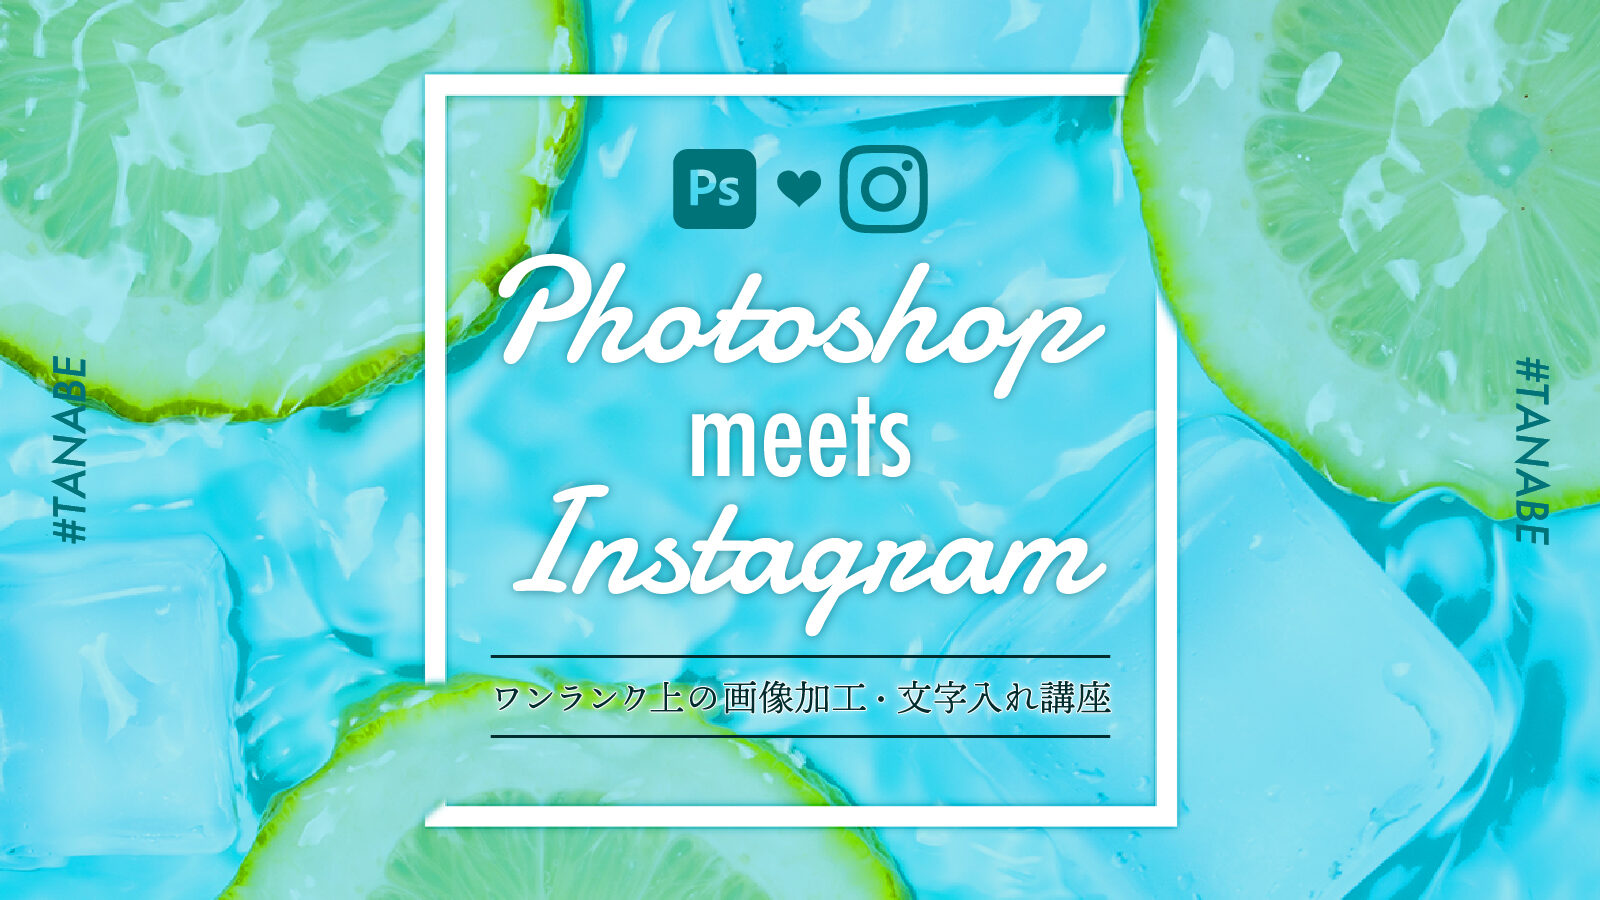 Photoshop meets Instagram<br>〜ワンランク上の画像加工・文字入れ講座〜in田辺